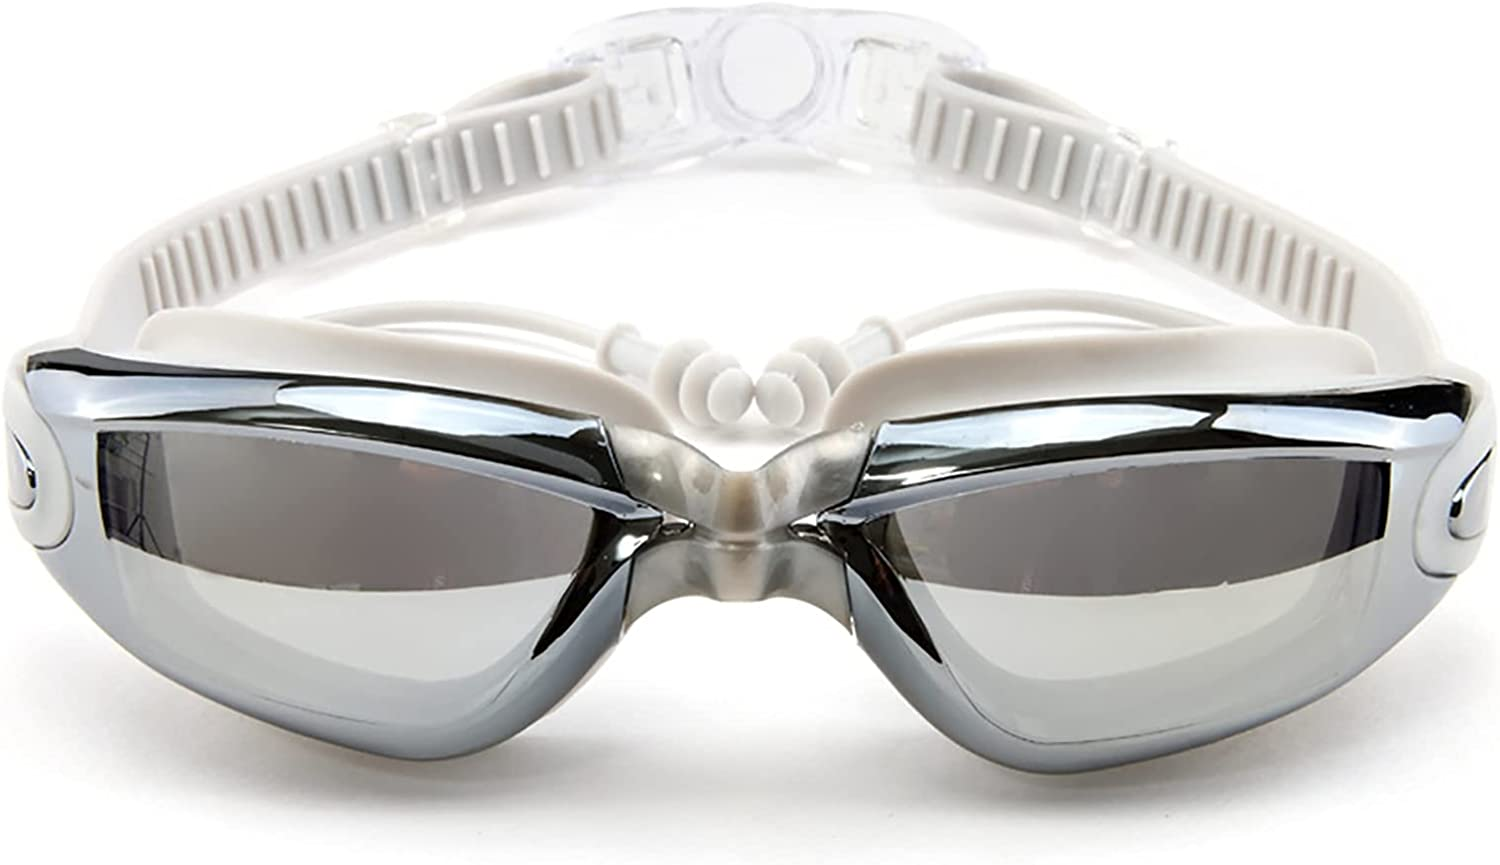 HzaiDanXin Animer and price revision Swim Max 49% OFF Goggles - Swimmi Swimming Adult